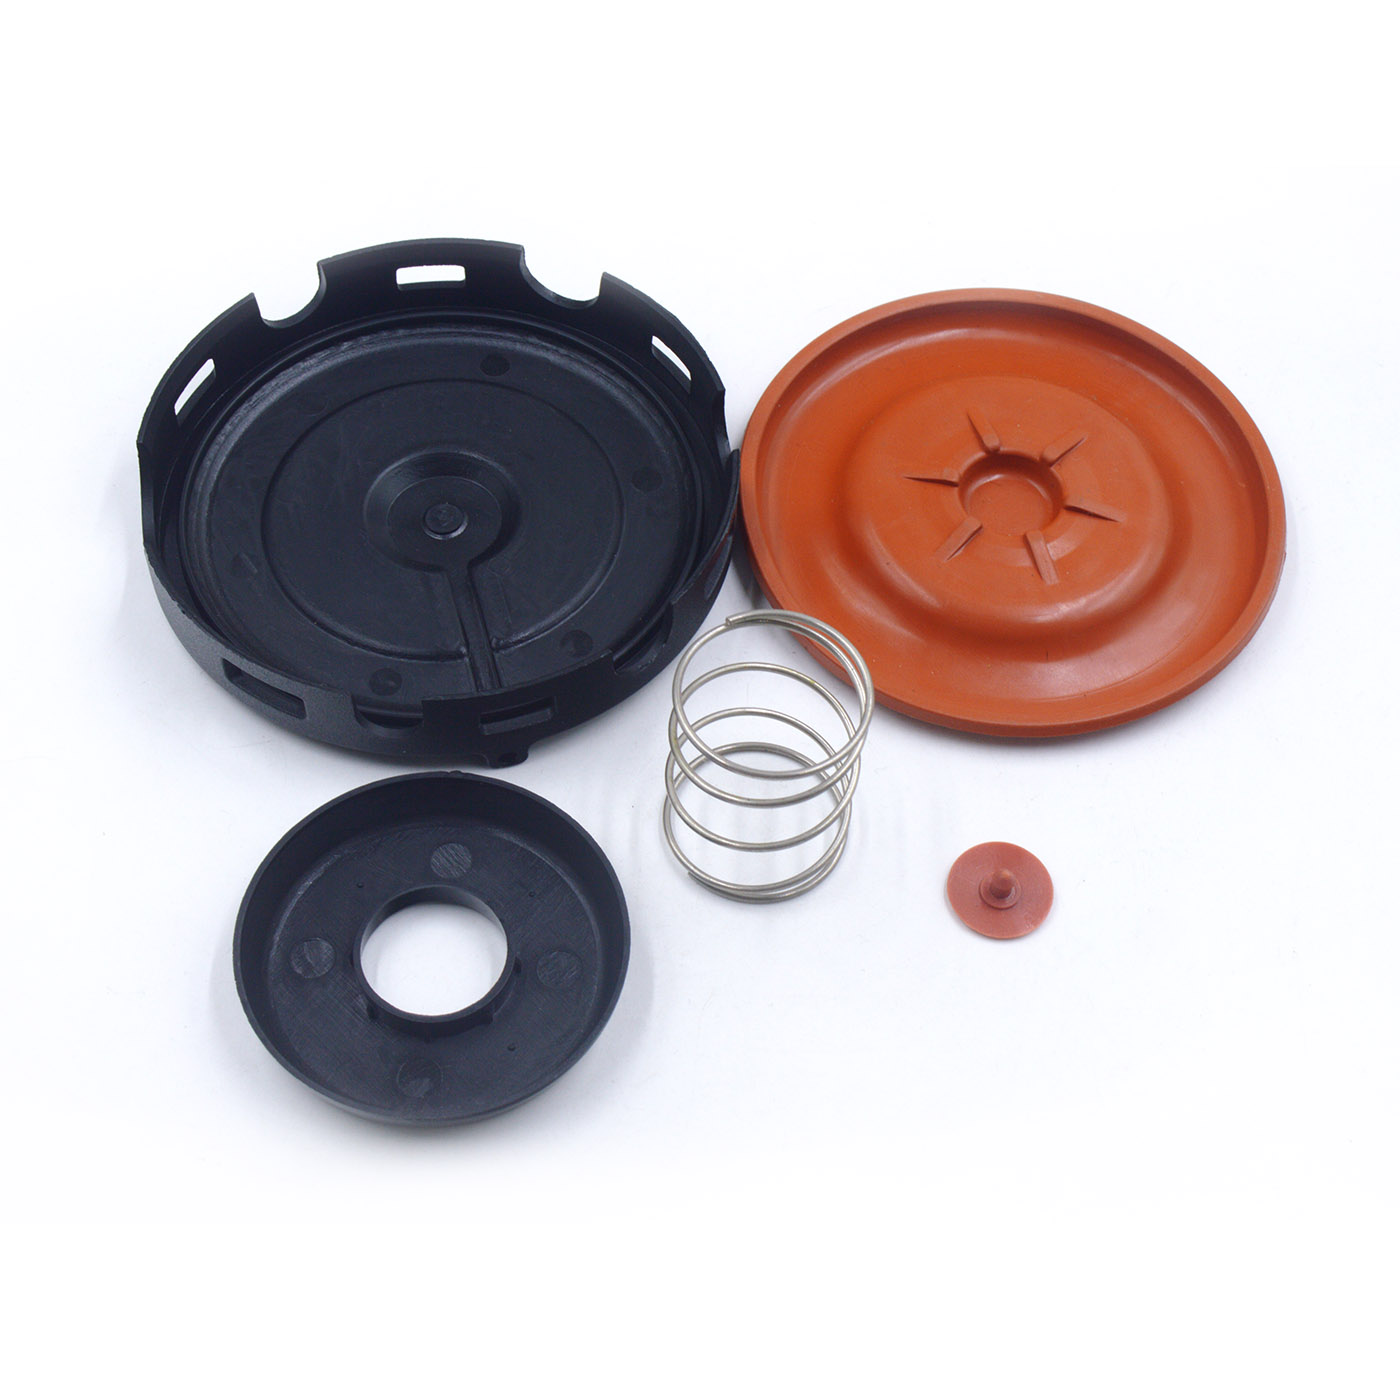 Oil Water Separator Valve Repair Kit For Audi A3 A4 A5 Q5 Seat Exeo Octavia Superb Yeti VW Amarok Beetle 06H 103 495 A 06H103495